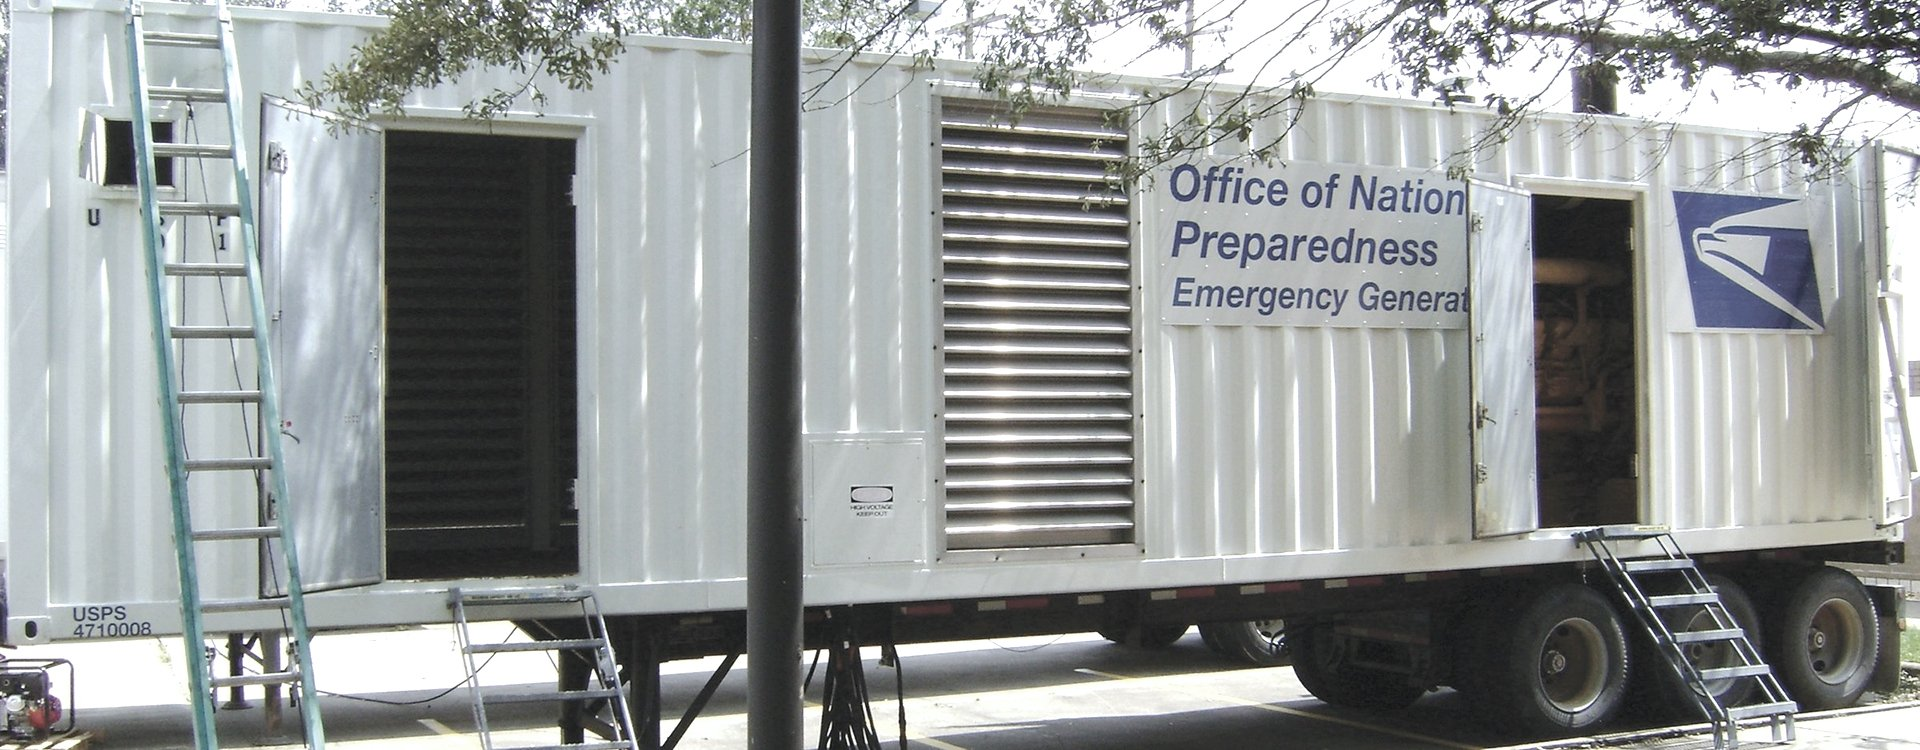 US Postal trailer being used to house emergency generator